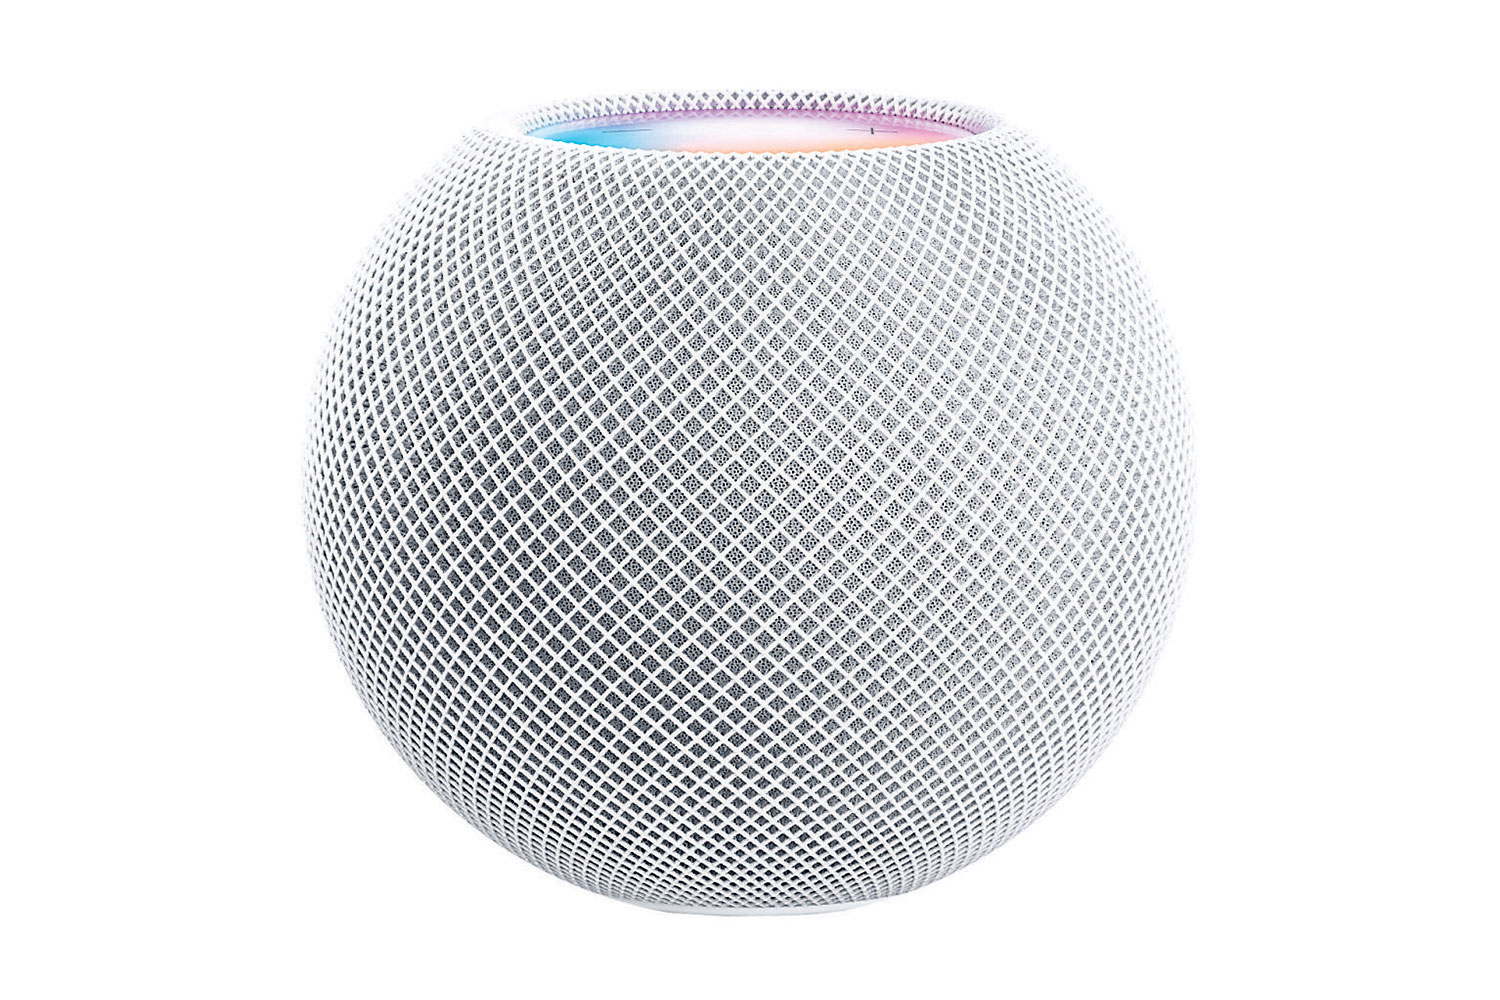 Apple's HomePod mini is seen in a photograph released in Cupertino, California, U.S. October 13, 2020.